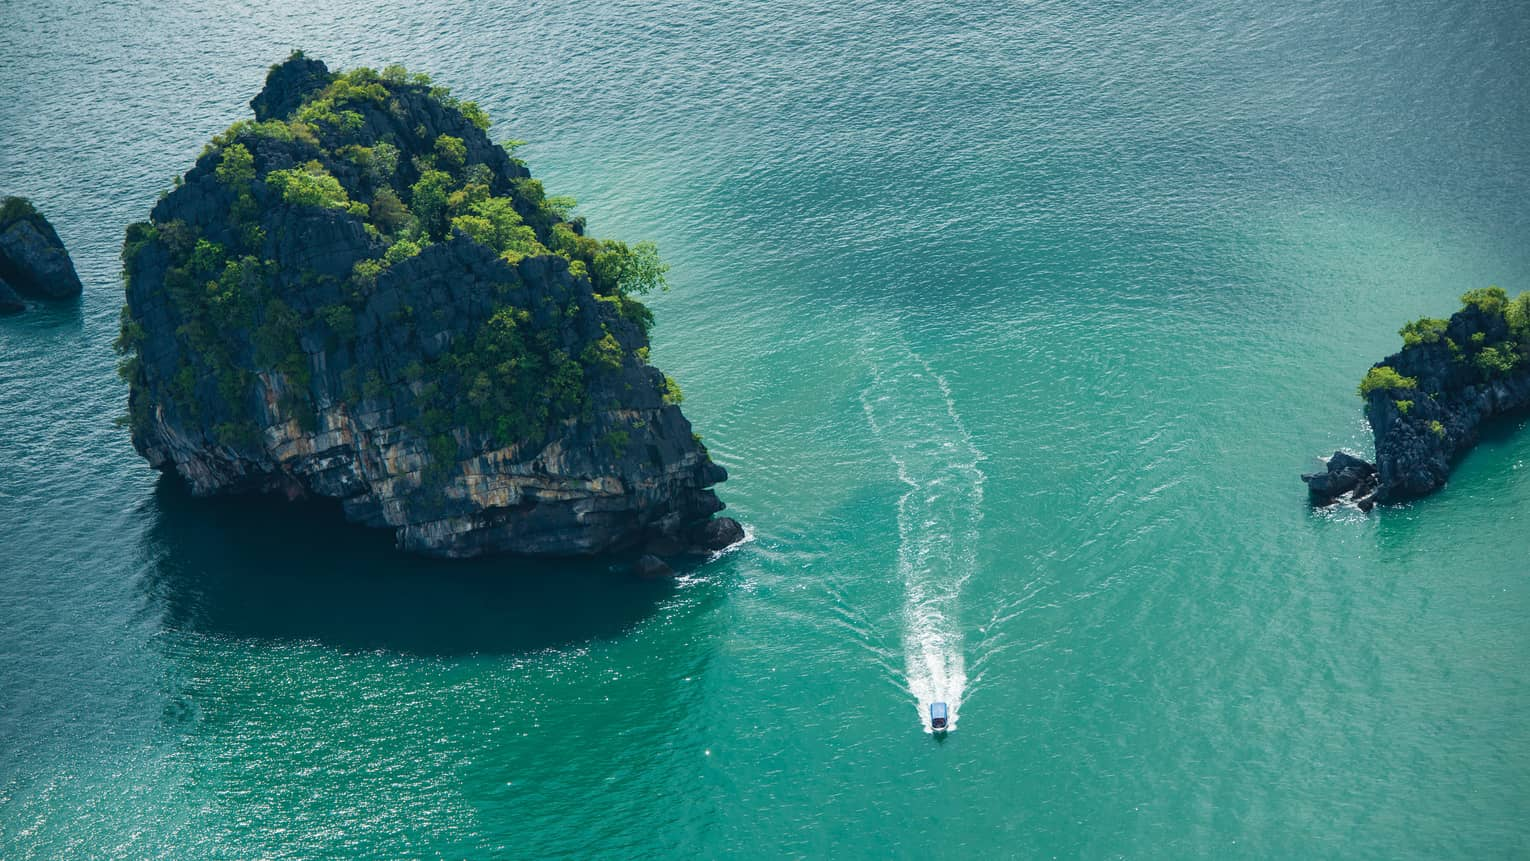 Ariel view of a boat driving through rock structures on emerald green water